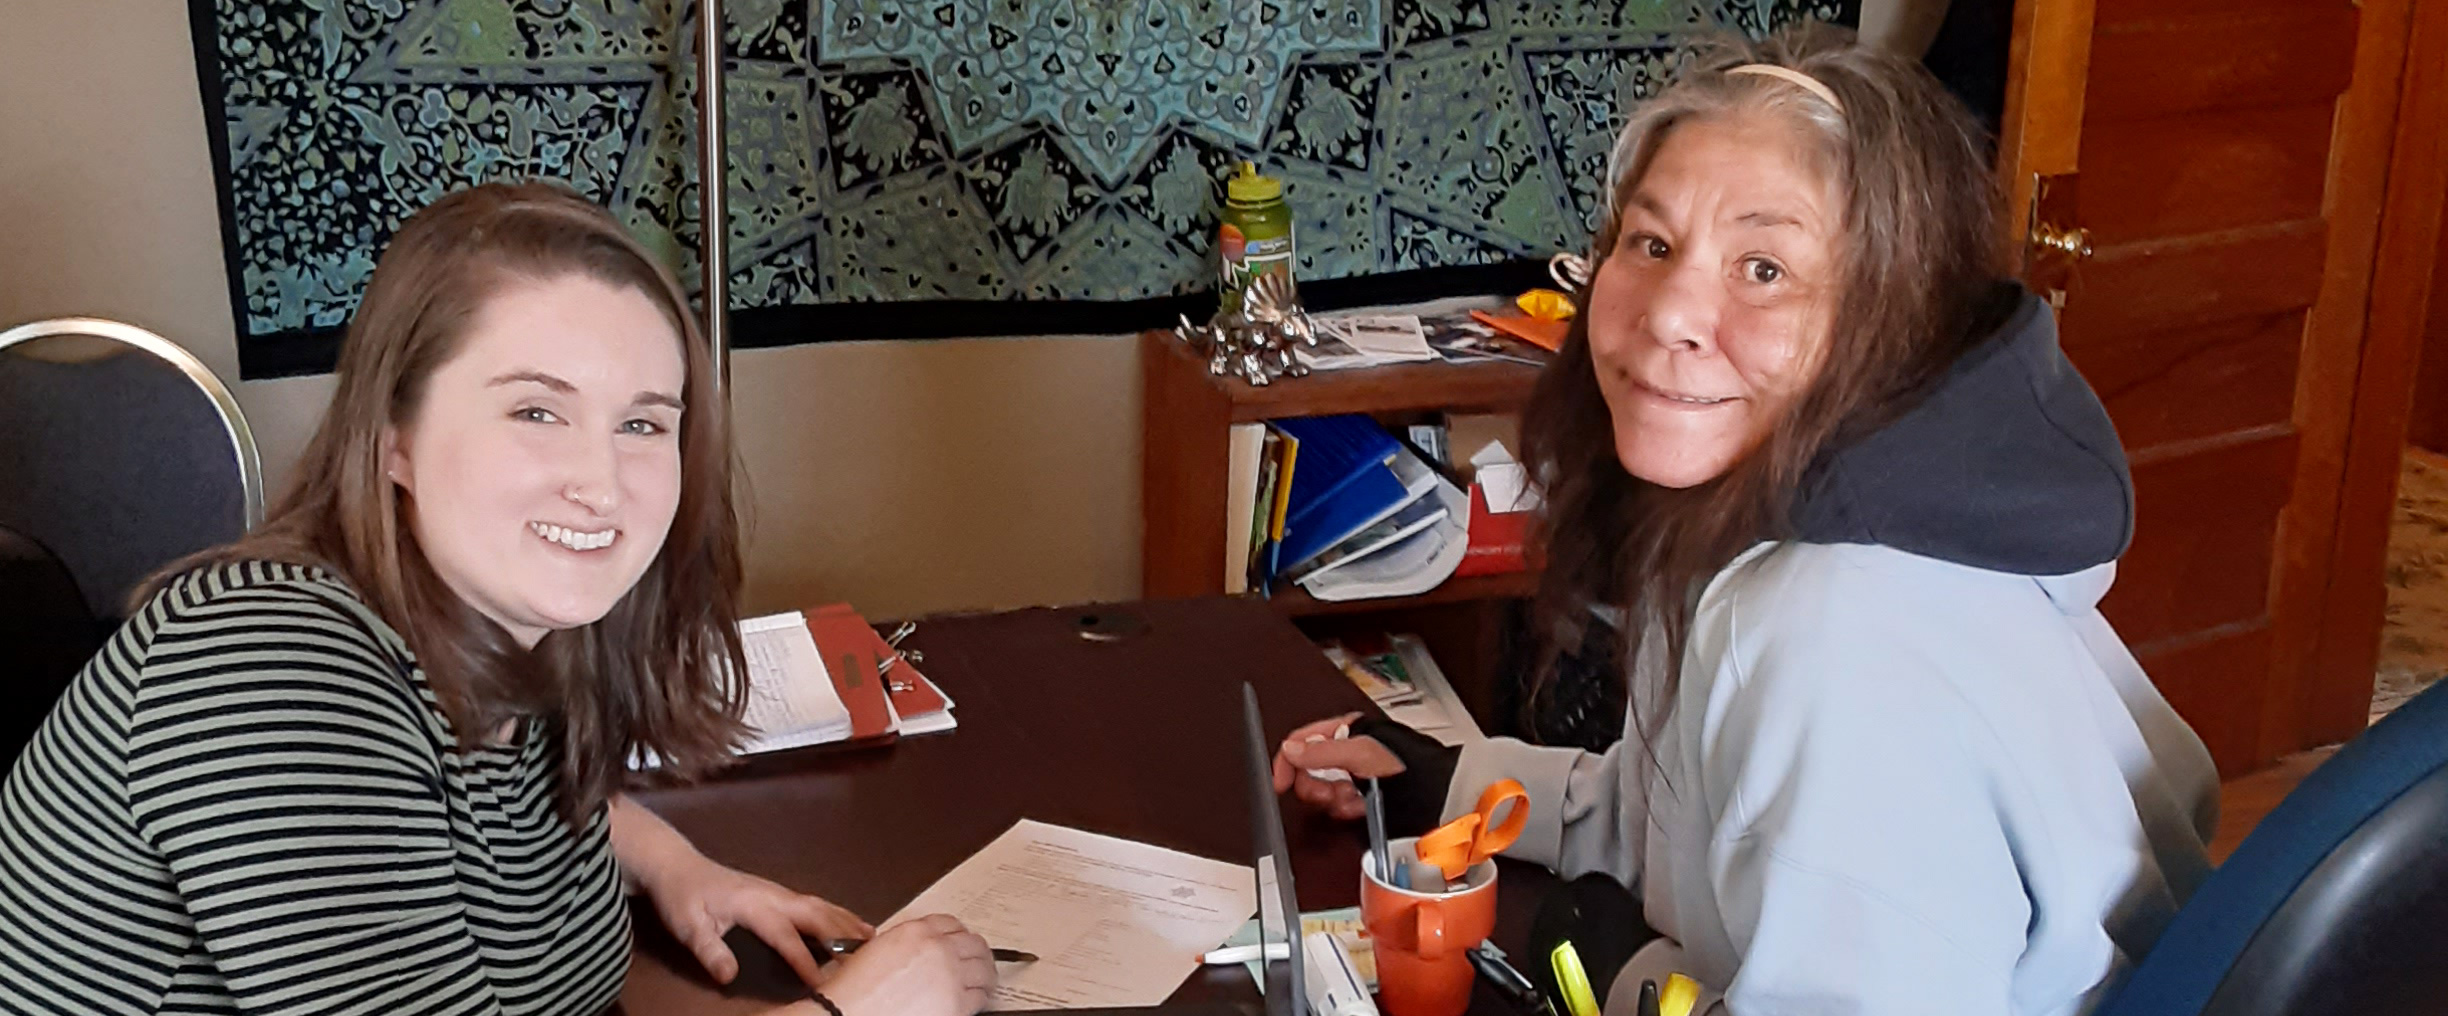 Lisa and Emily, her case manager, smile are meeting at a desk and smiling at the camera